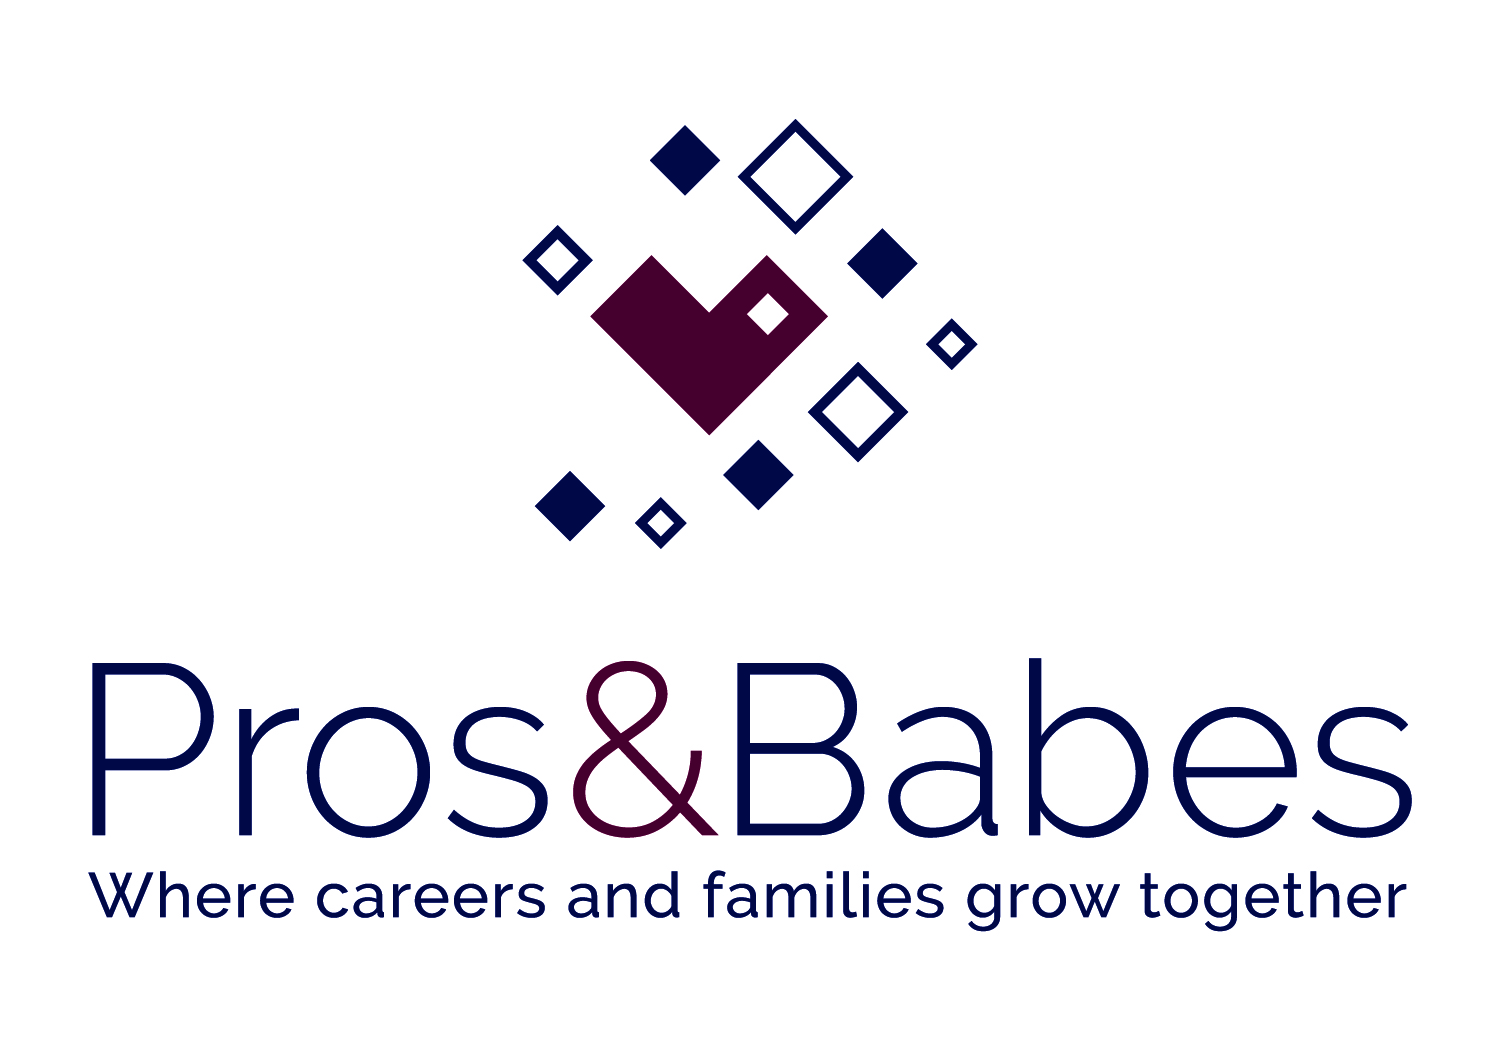 Pros&Babes is a place where careers and families grow together.